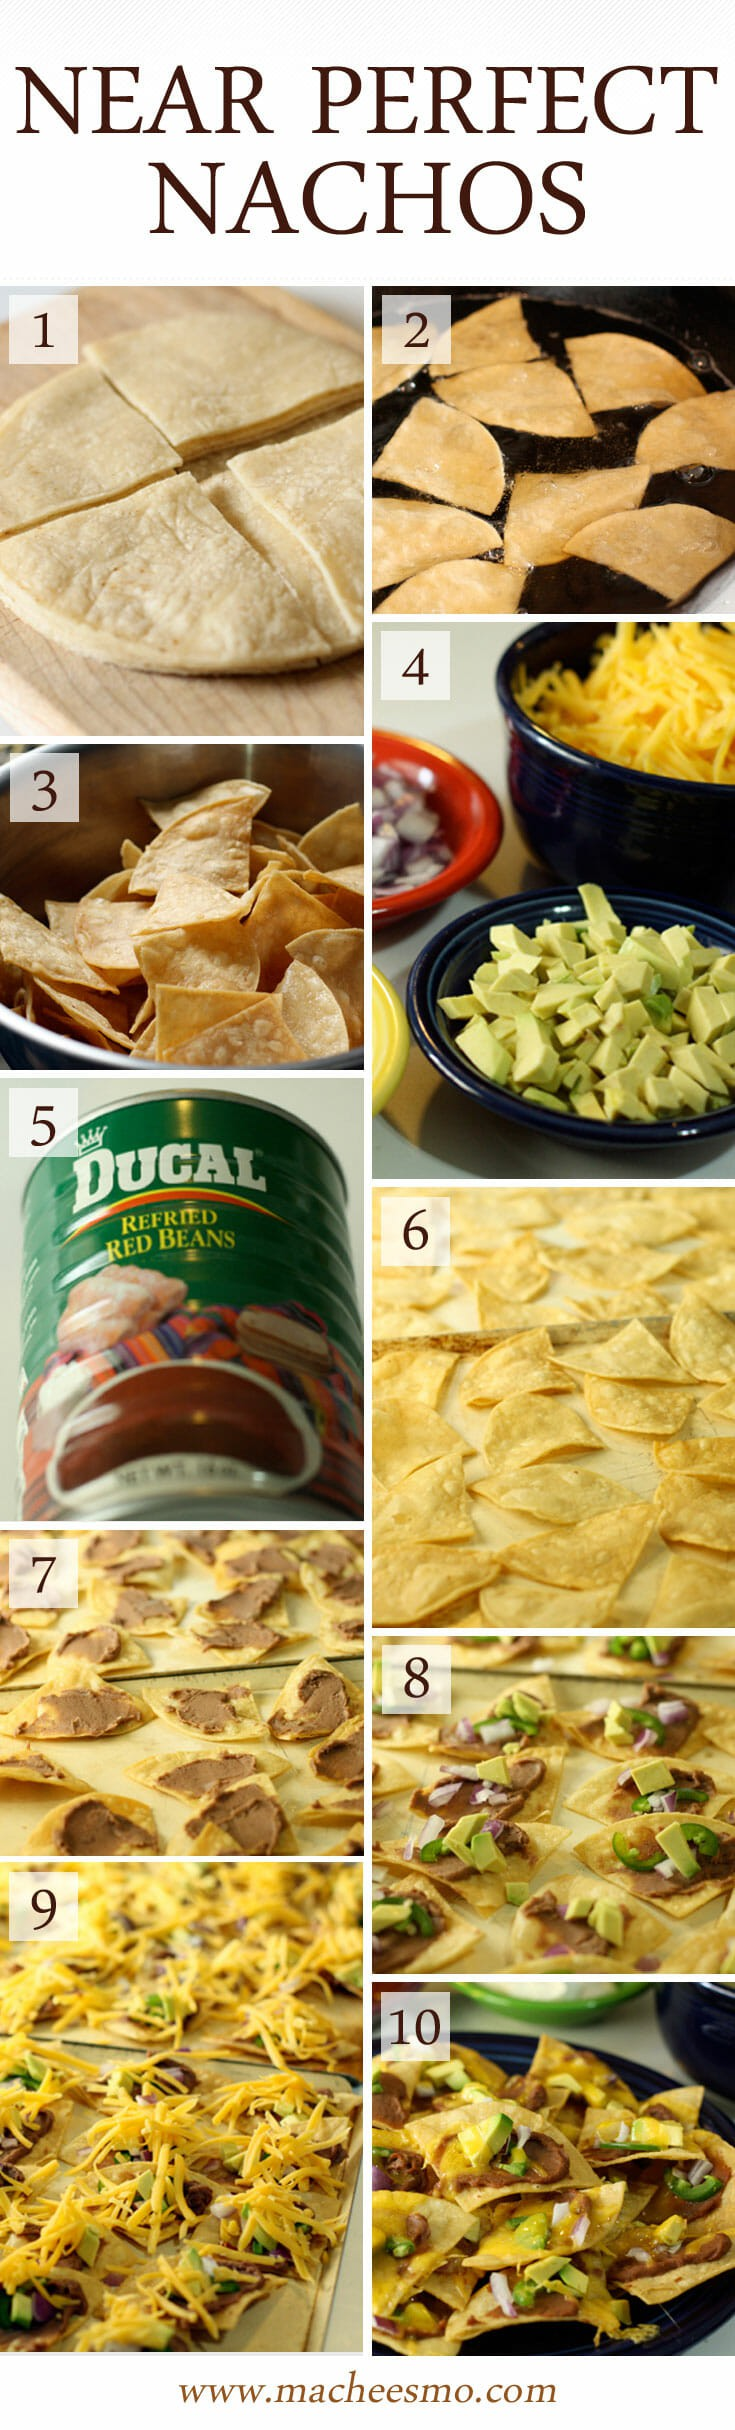 Near Perfect Nachos: The way to make really great nachos for a special occasion is to make your own chips and top them individually. Yep... you read that right! It's not so hard though and is worth the work!